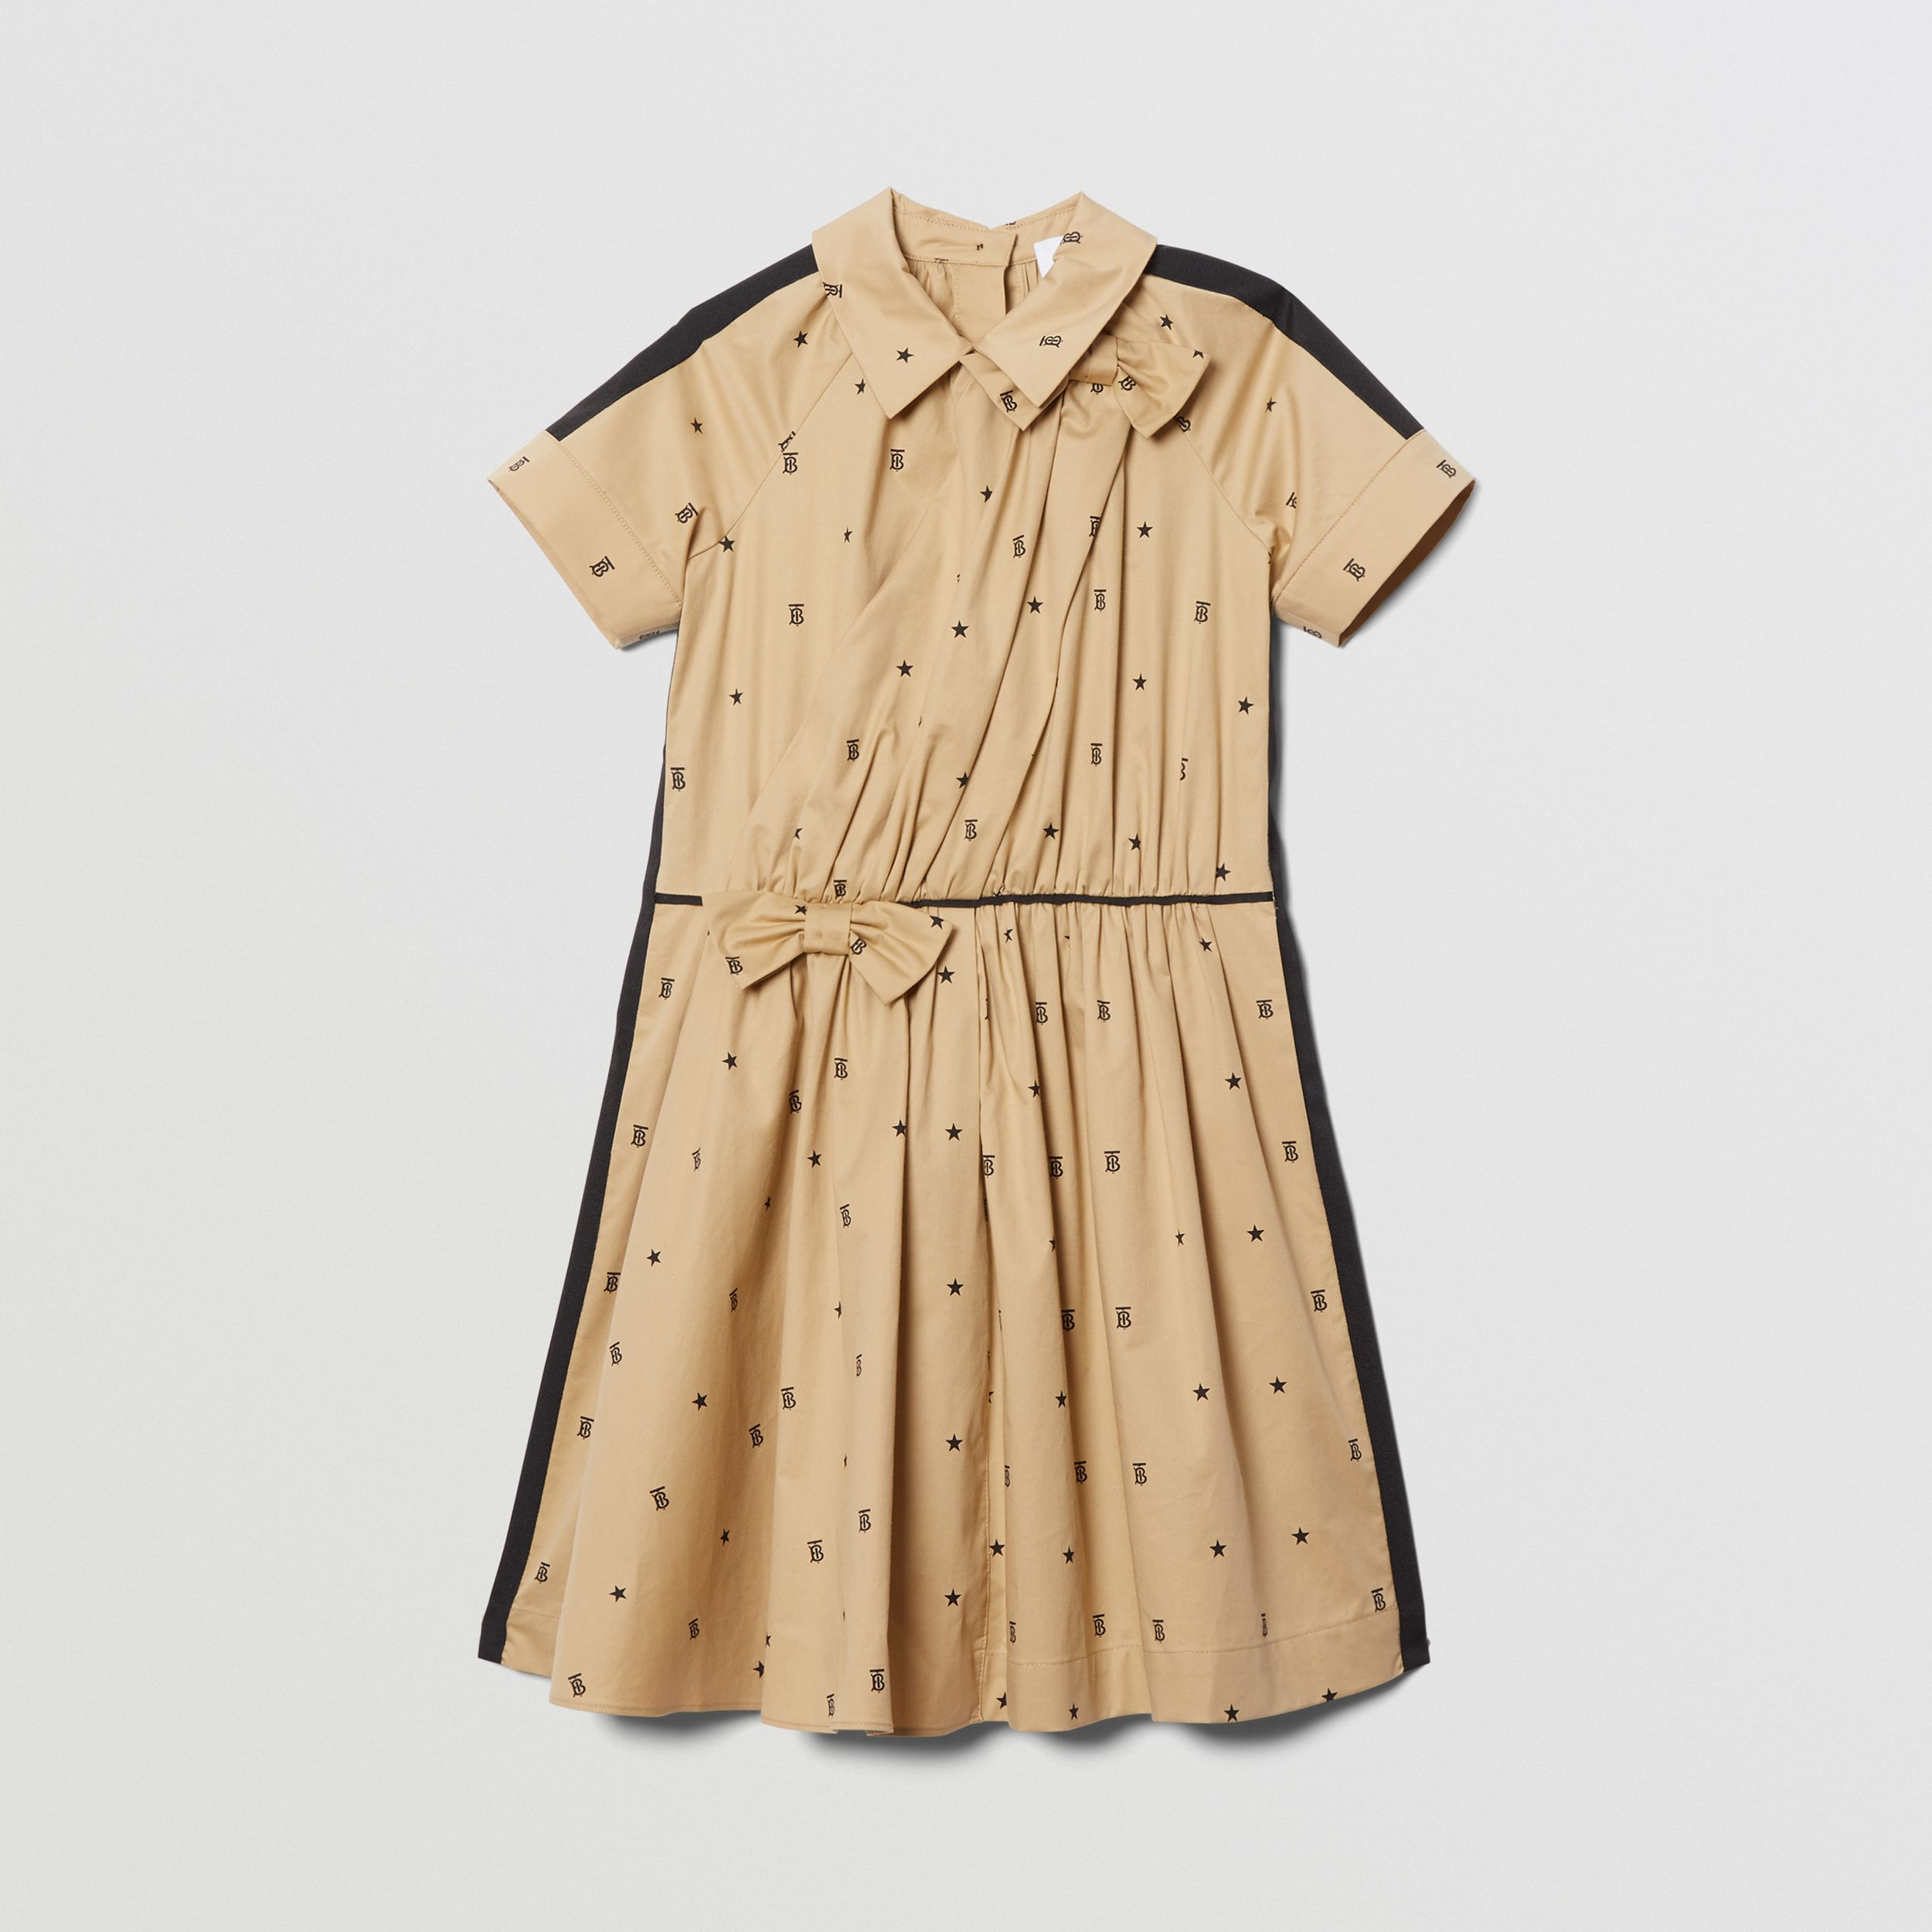 Star and Monogram Motif Stretch Cotton Dress in Sand | Burberry Hong Kong S.A.R. - 1